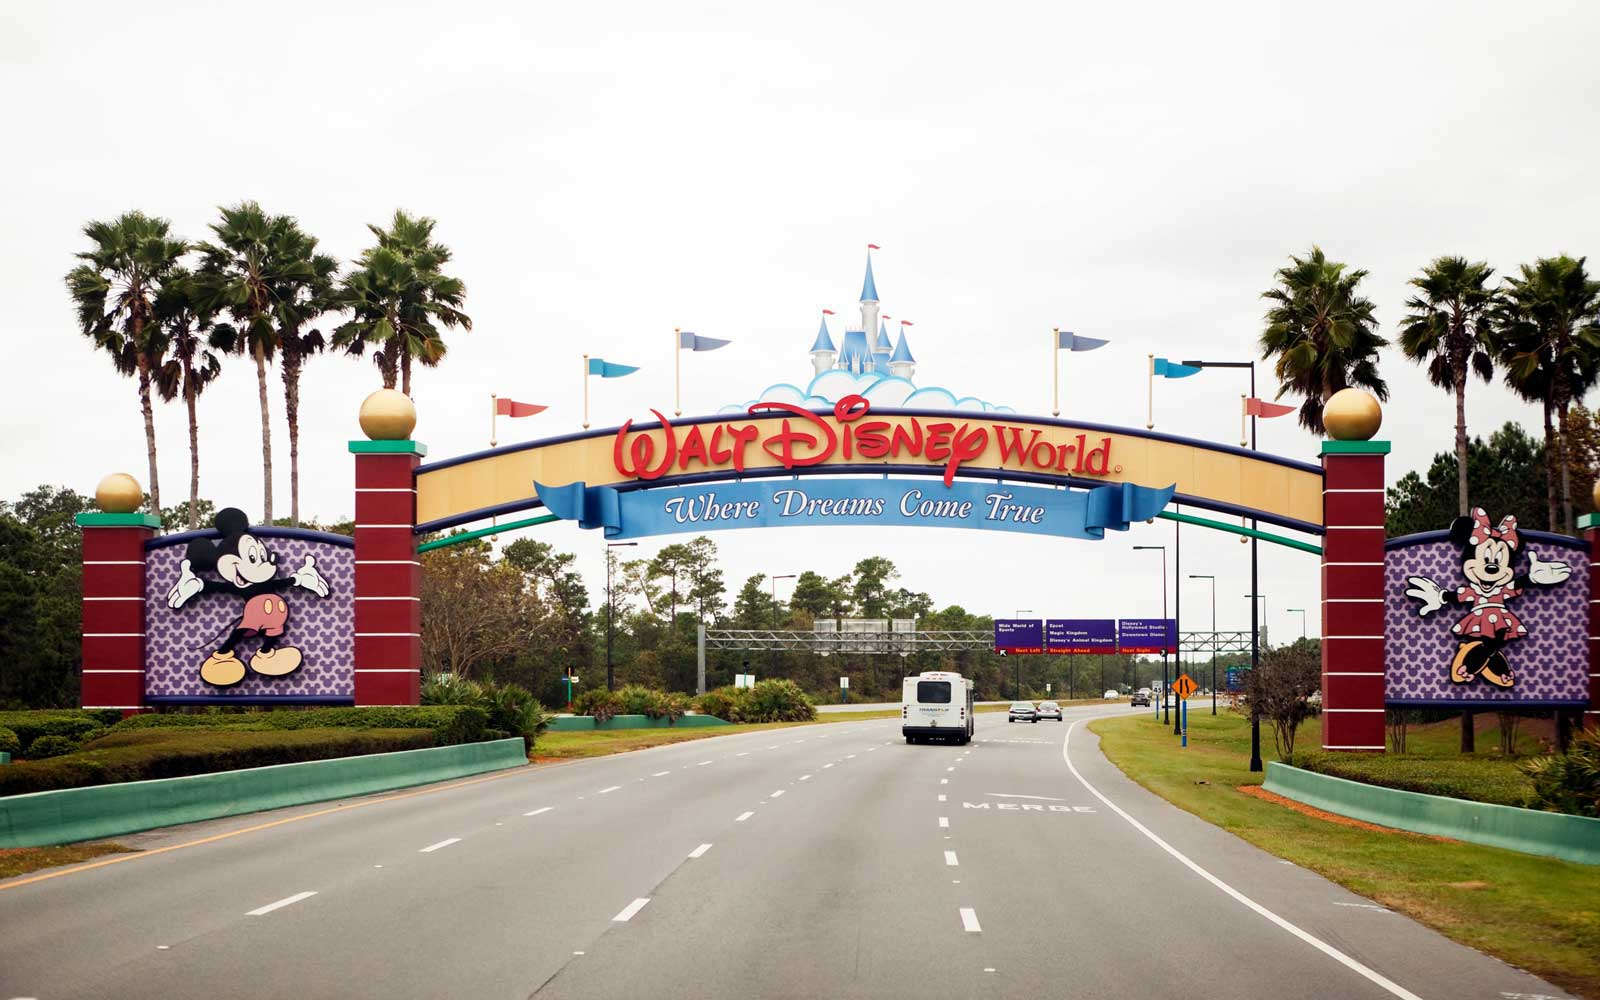 South entrance of Disney World in Orlando Florida